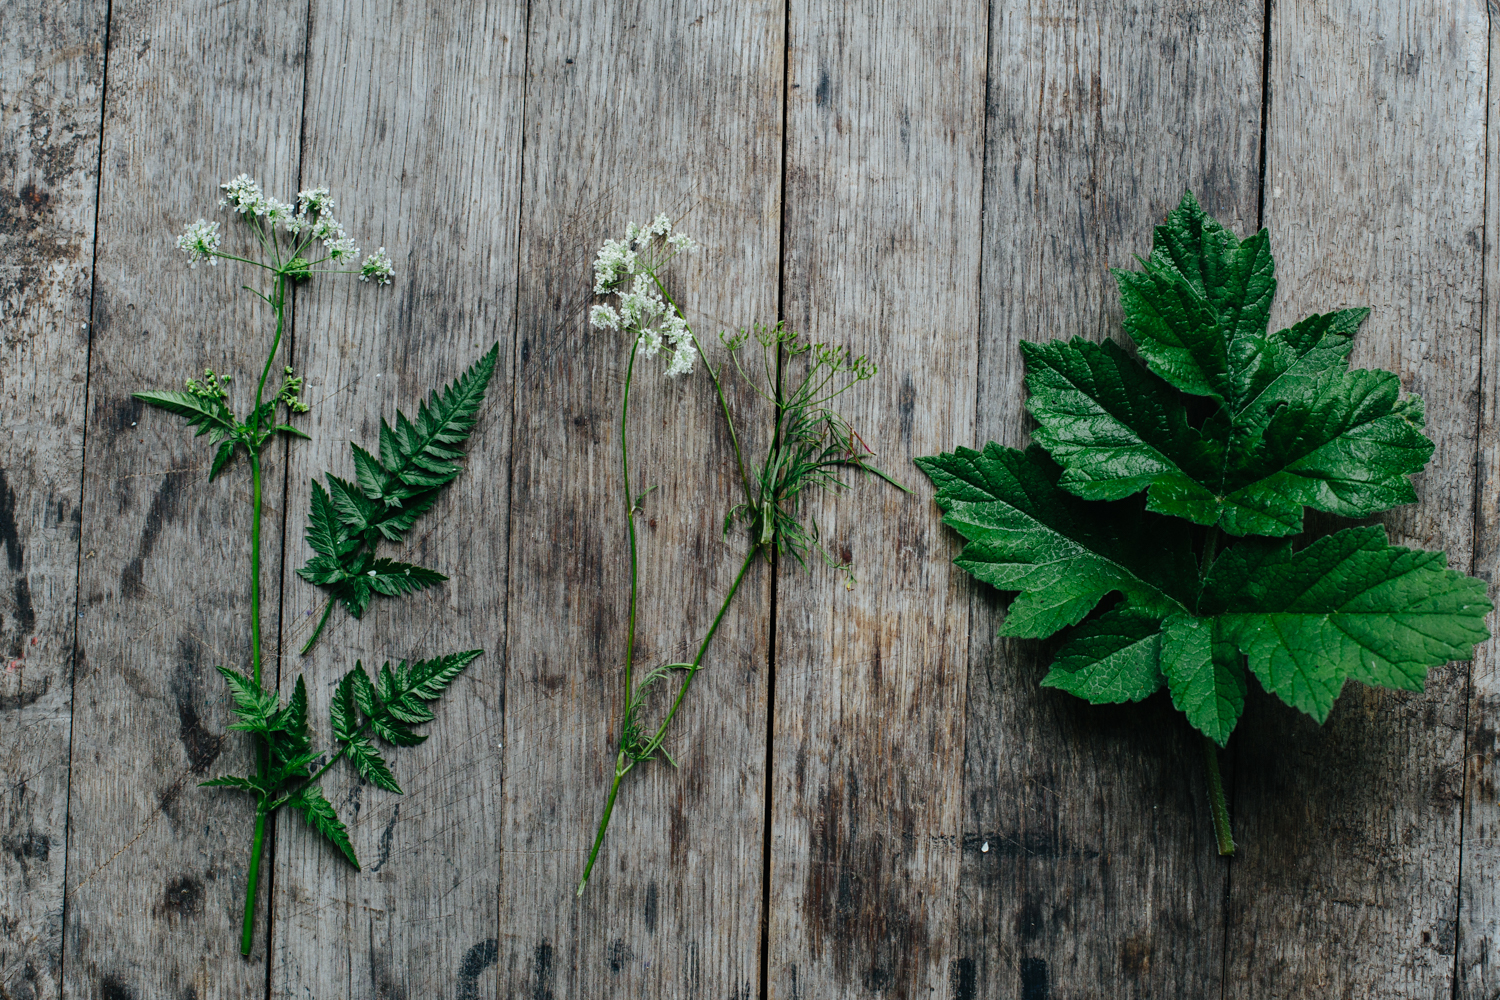 From left to right: Cow Parsley, wild carrot (also good for dyeing) and hogweed leaves (no flowers are out yet)